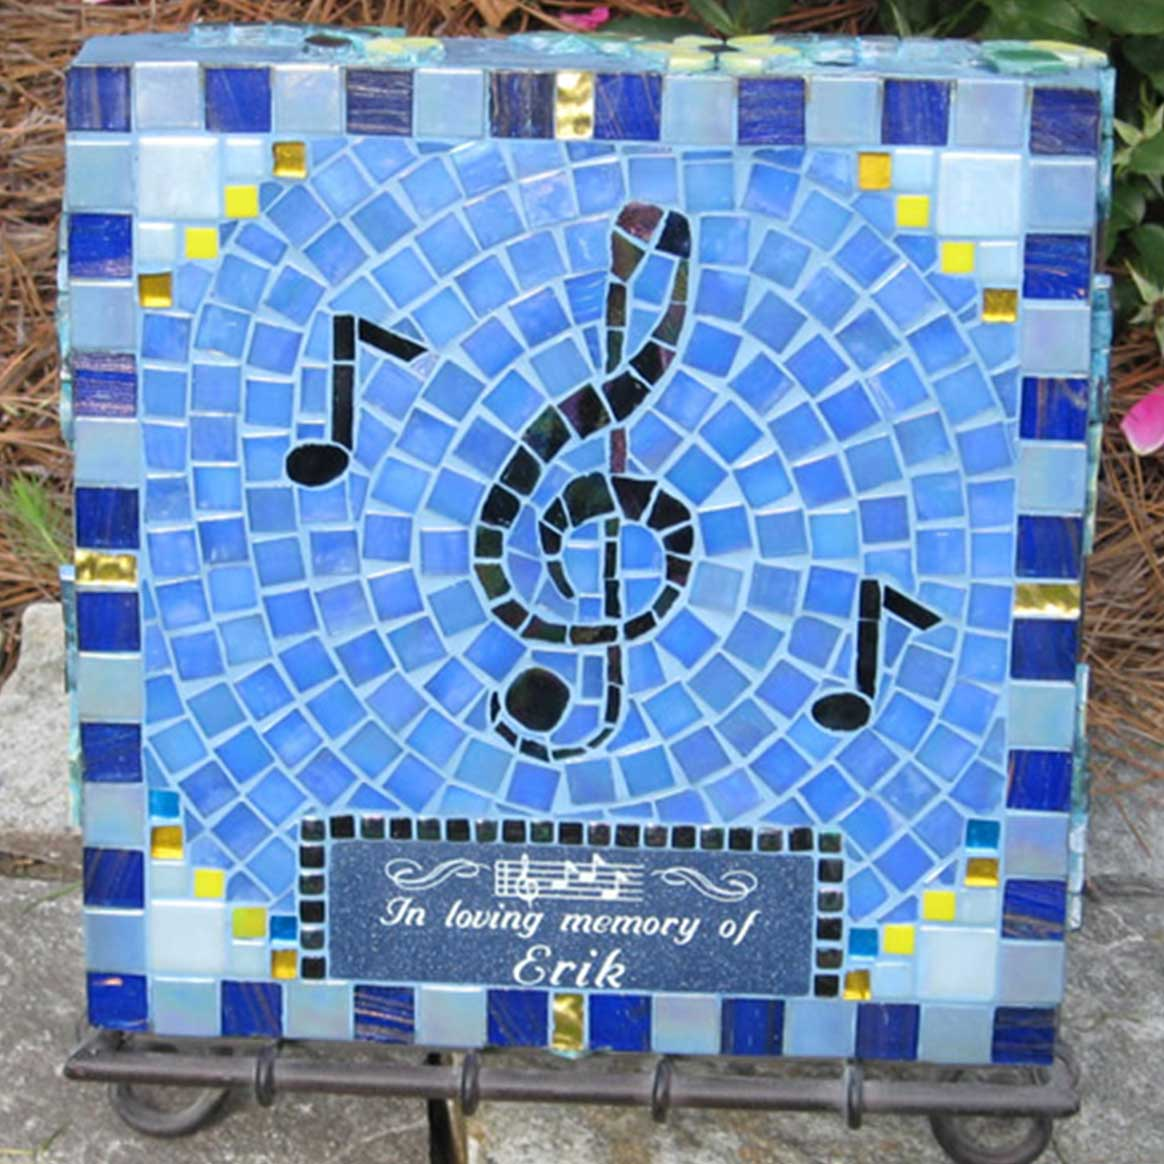 Mosaic Memorial Garden Art Stone of Erik's Treble Clef by Water's End Studio Artist Linda Solby